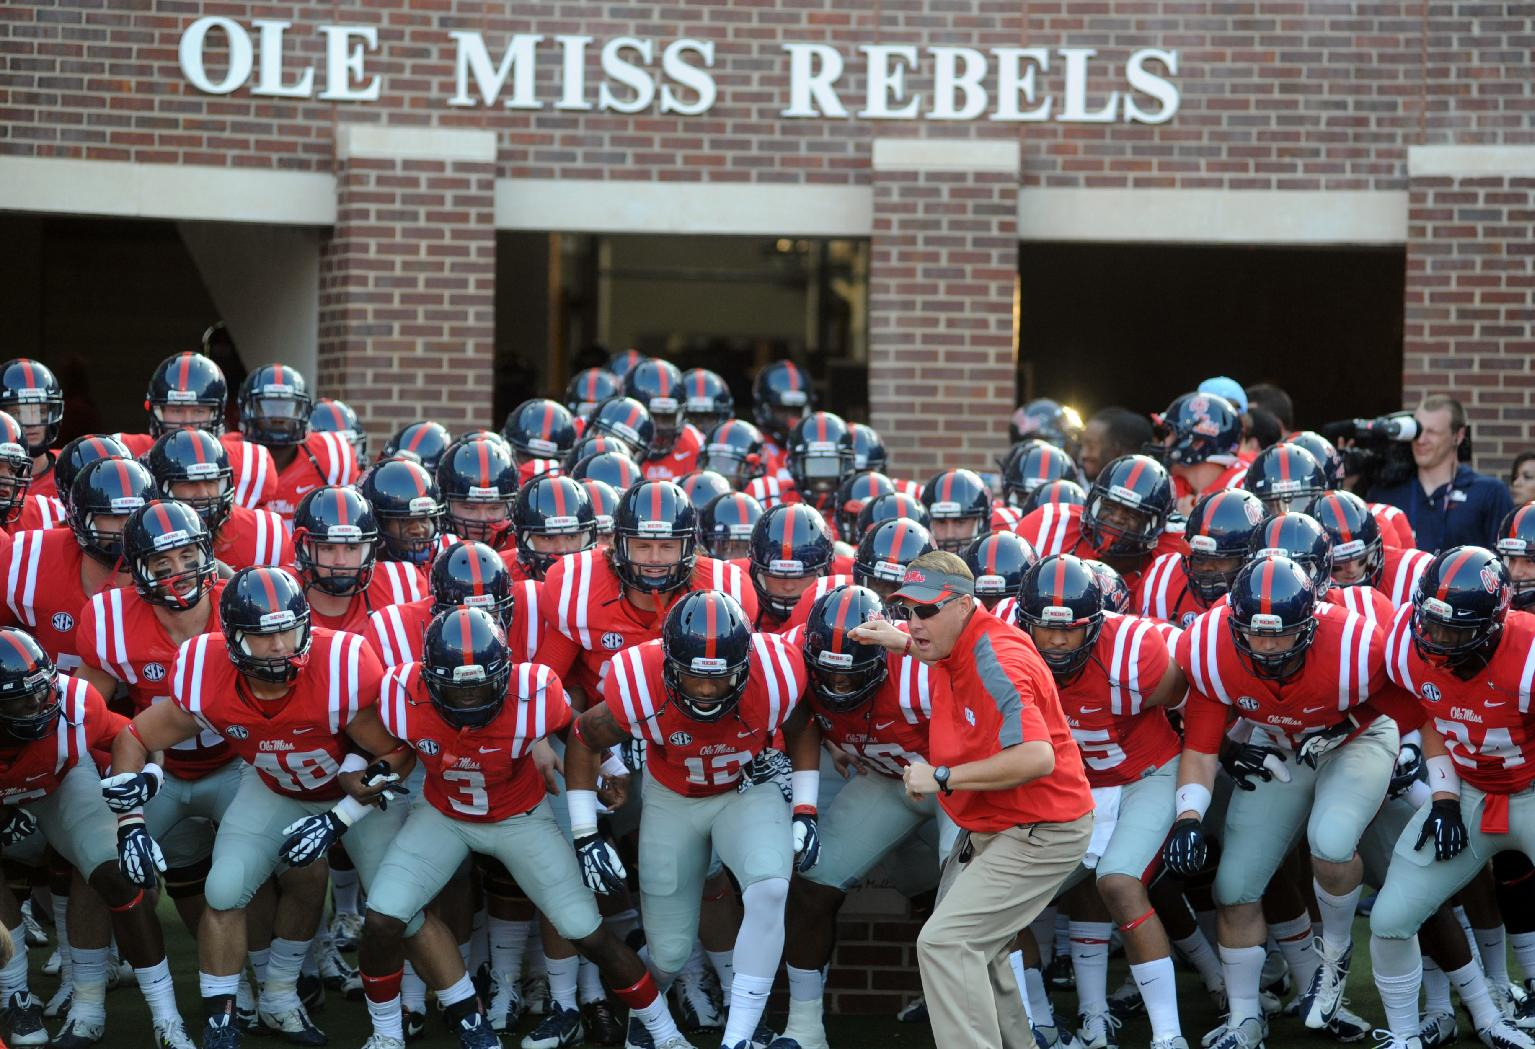 Ole miss gameday colors 2015 - The Ole Miss Rebels